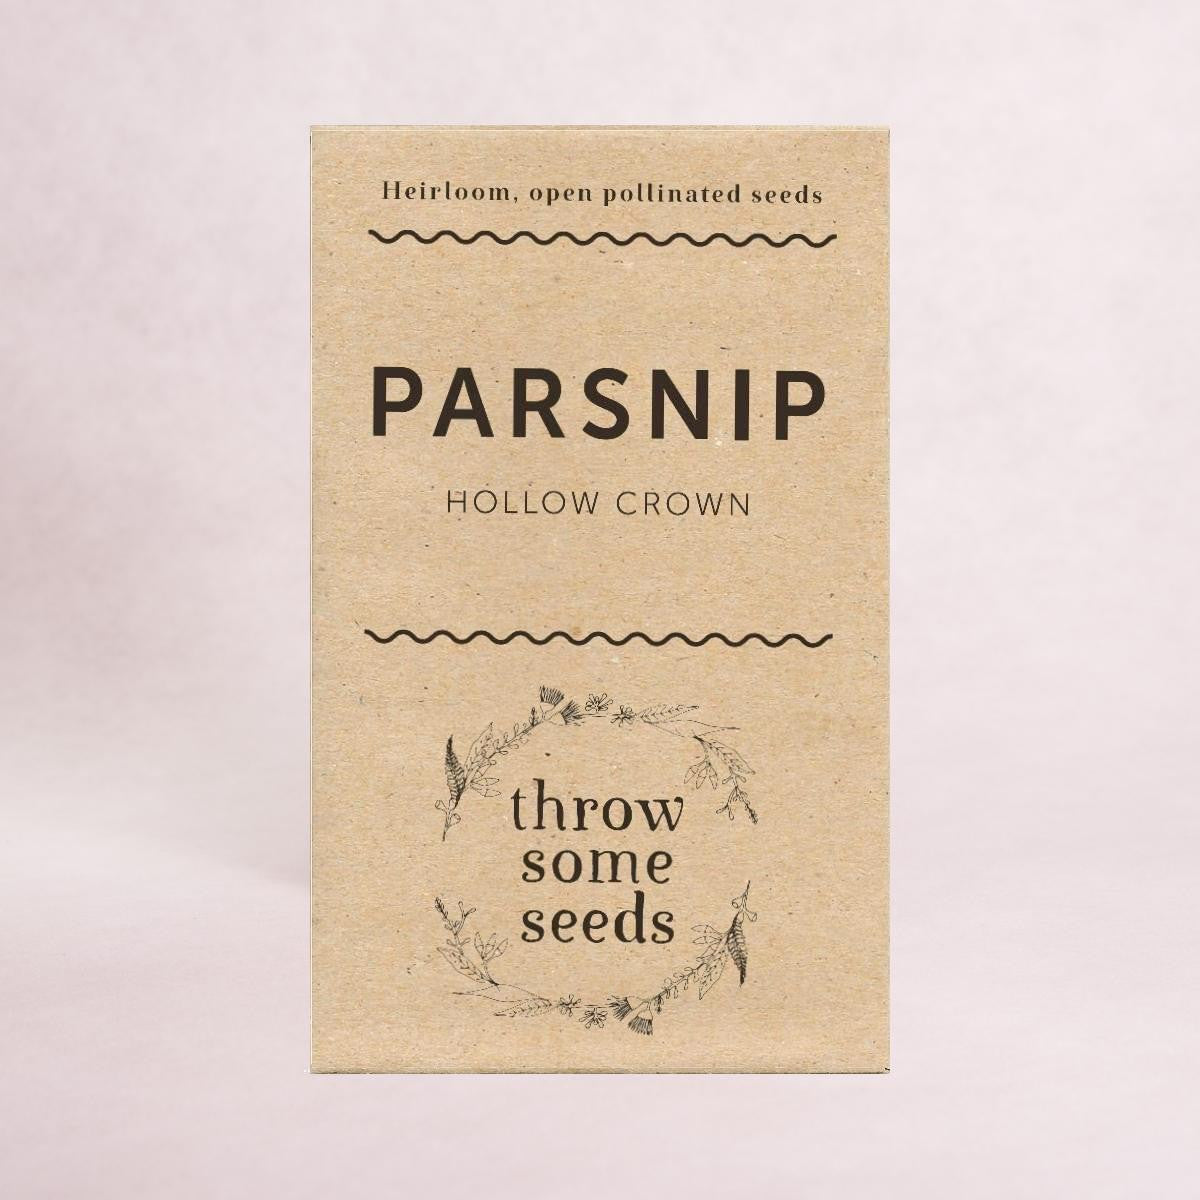 Parsnip (Hollow Crown) - Heirloom Seeds - Throw Some Seeds